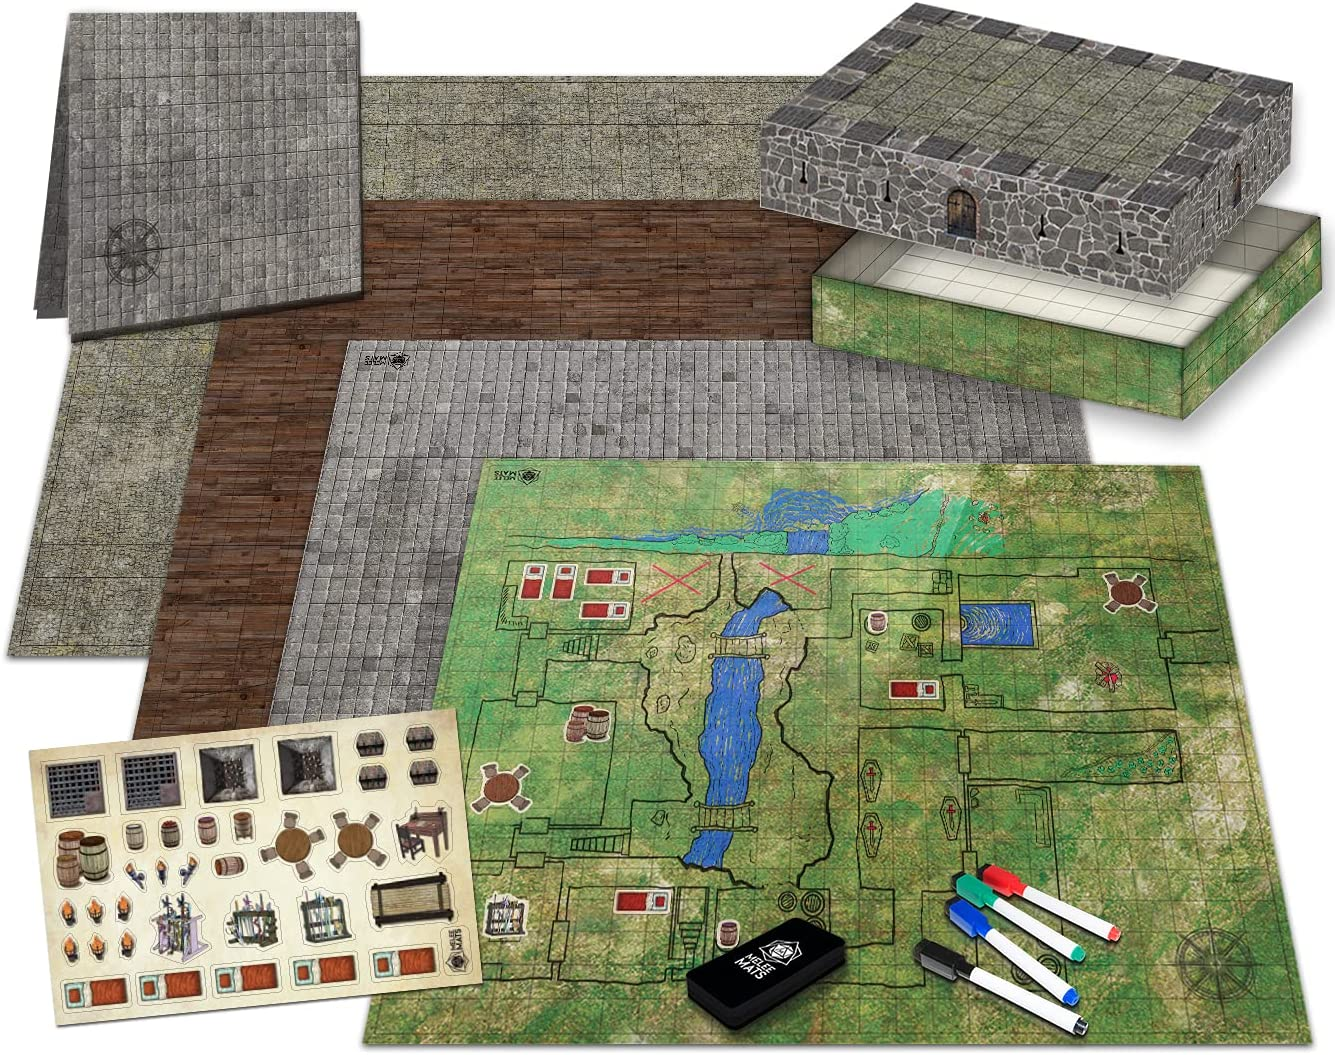 Ultimate Battle Grid Game Board 2021new shipping free - Min Erase Square Dry Hex RPG Raleigh Mall